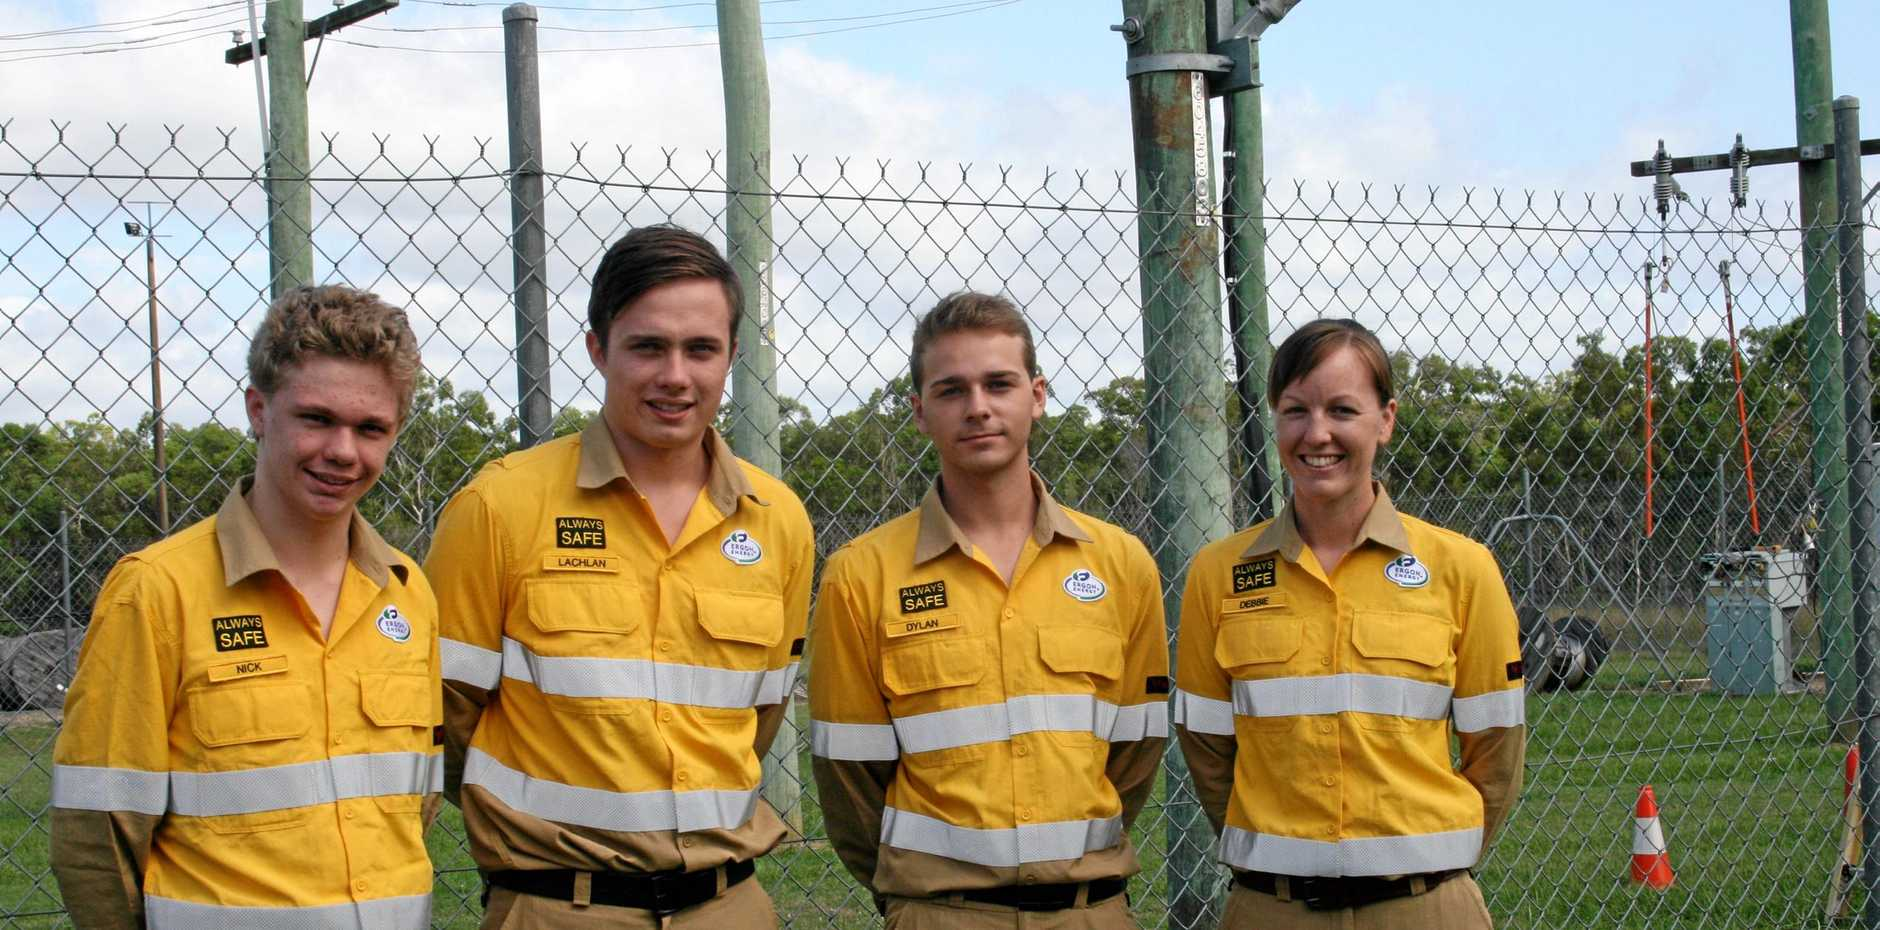 Nick Jackson (Maryborough), Lachlan Peebles (Hervey Bay), Dylan Petersen (Hervey Bay) and Debbie Phillips (Maryborough) are some of the new apprentices that have started with Ergon Energy.